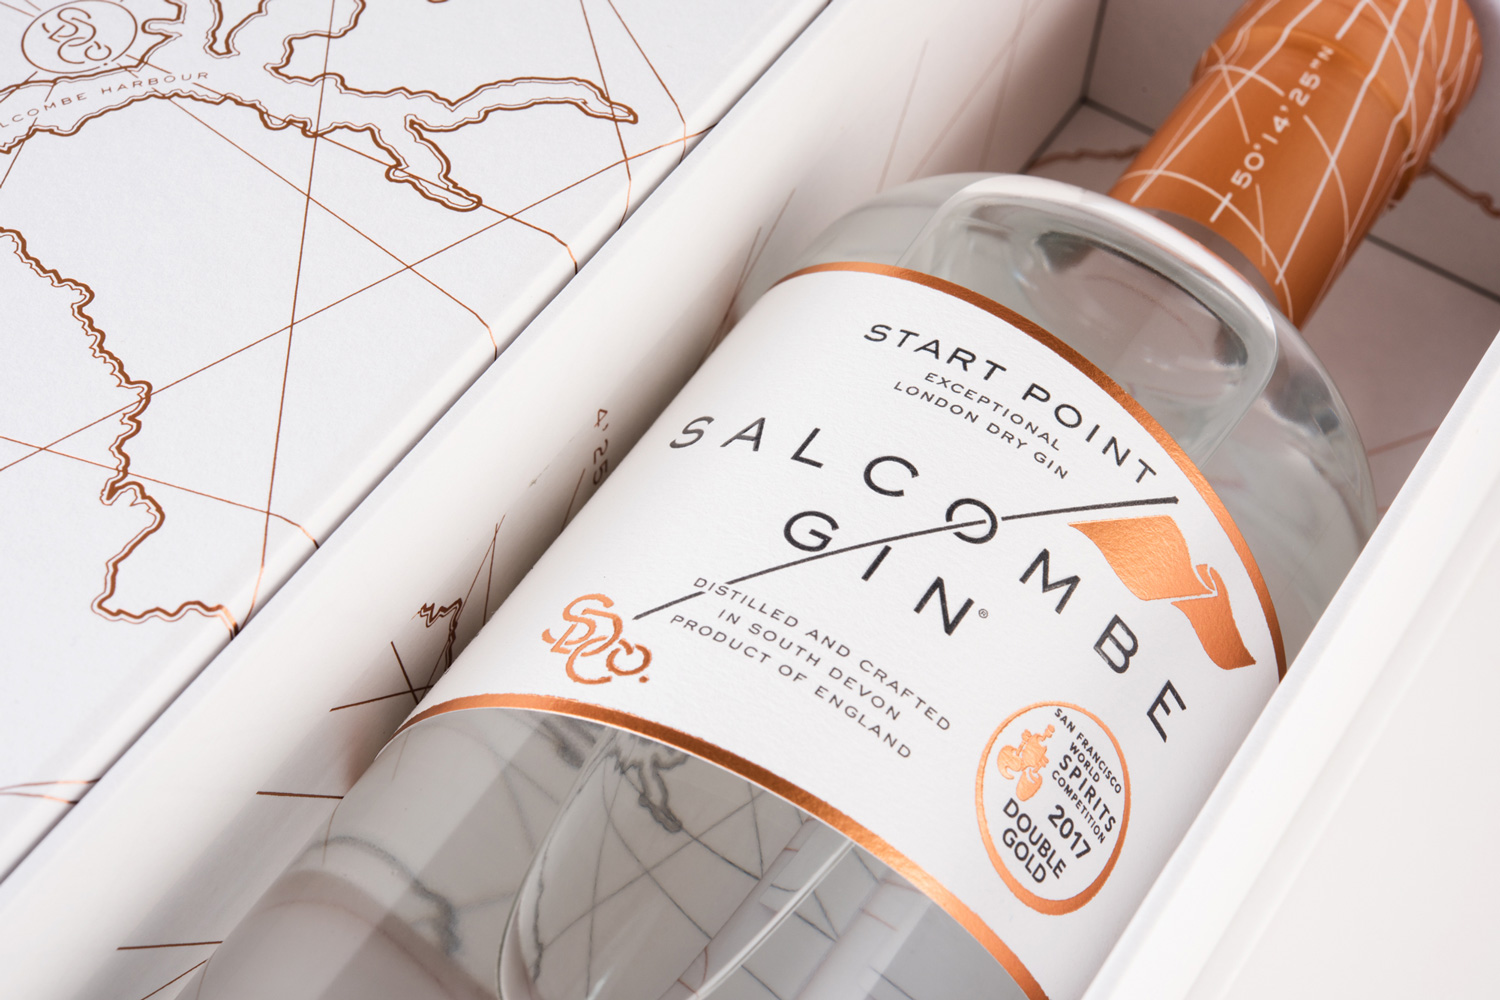 Progress Packaging Salcombe Gin Spirits Bottle Retail Luxury Foil Quality Bespoke Minimal Alcohol Gift Presentation